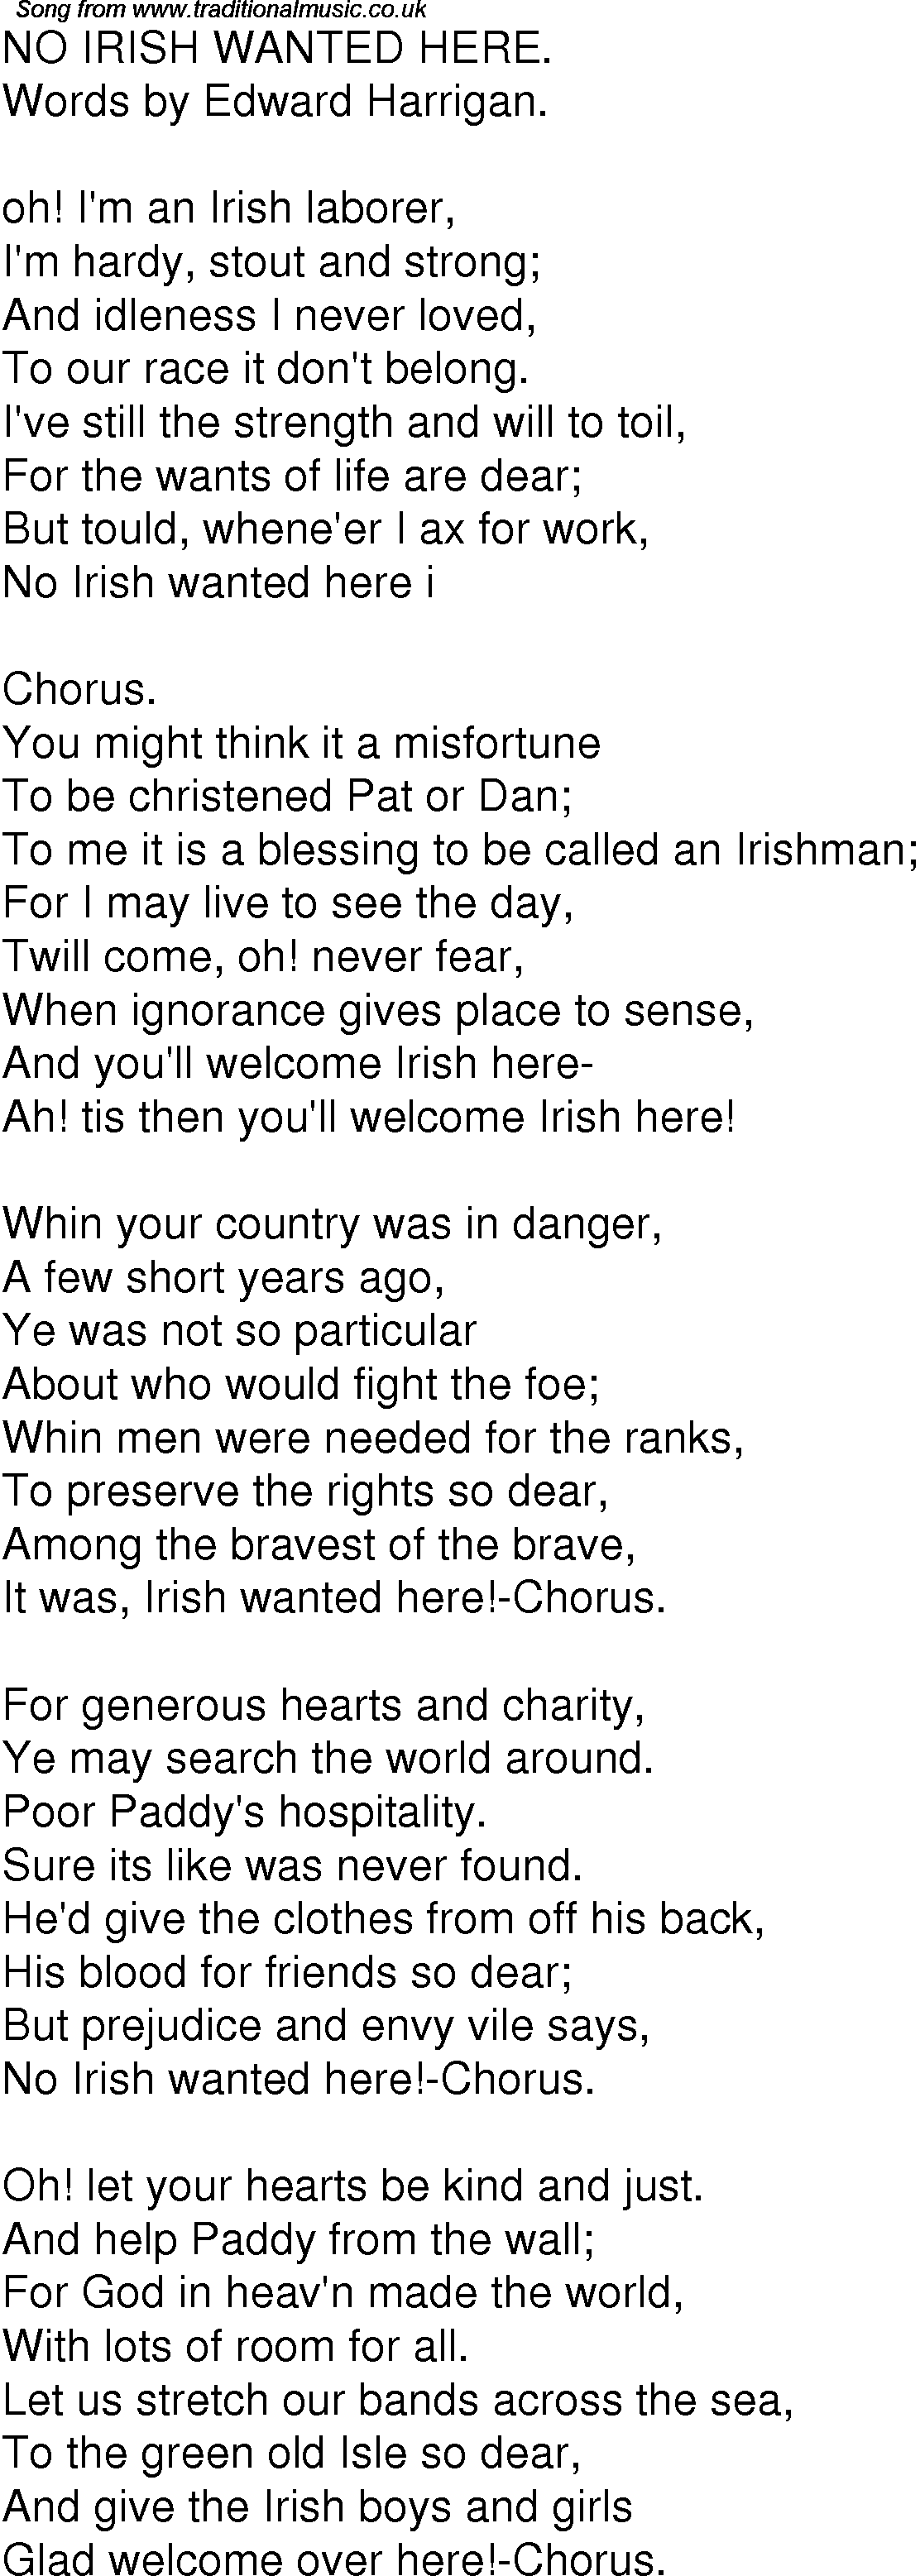 Old Time Song Lyrics for 04 No Irish Wanted Here